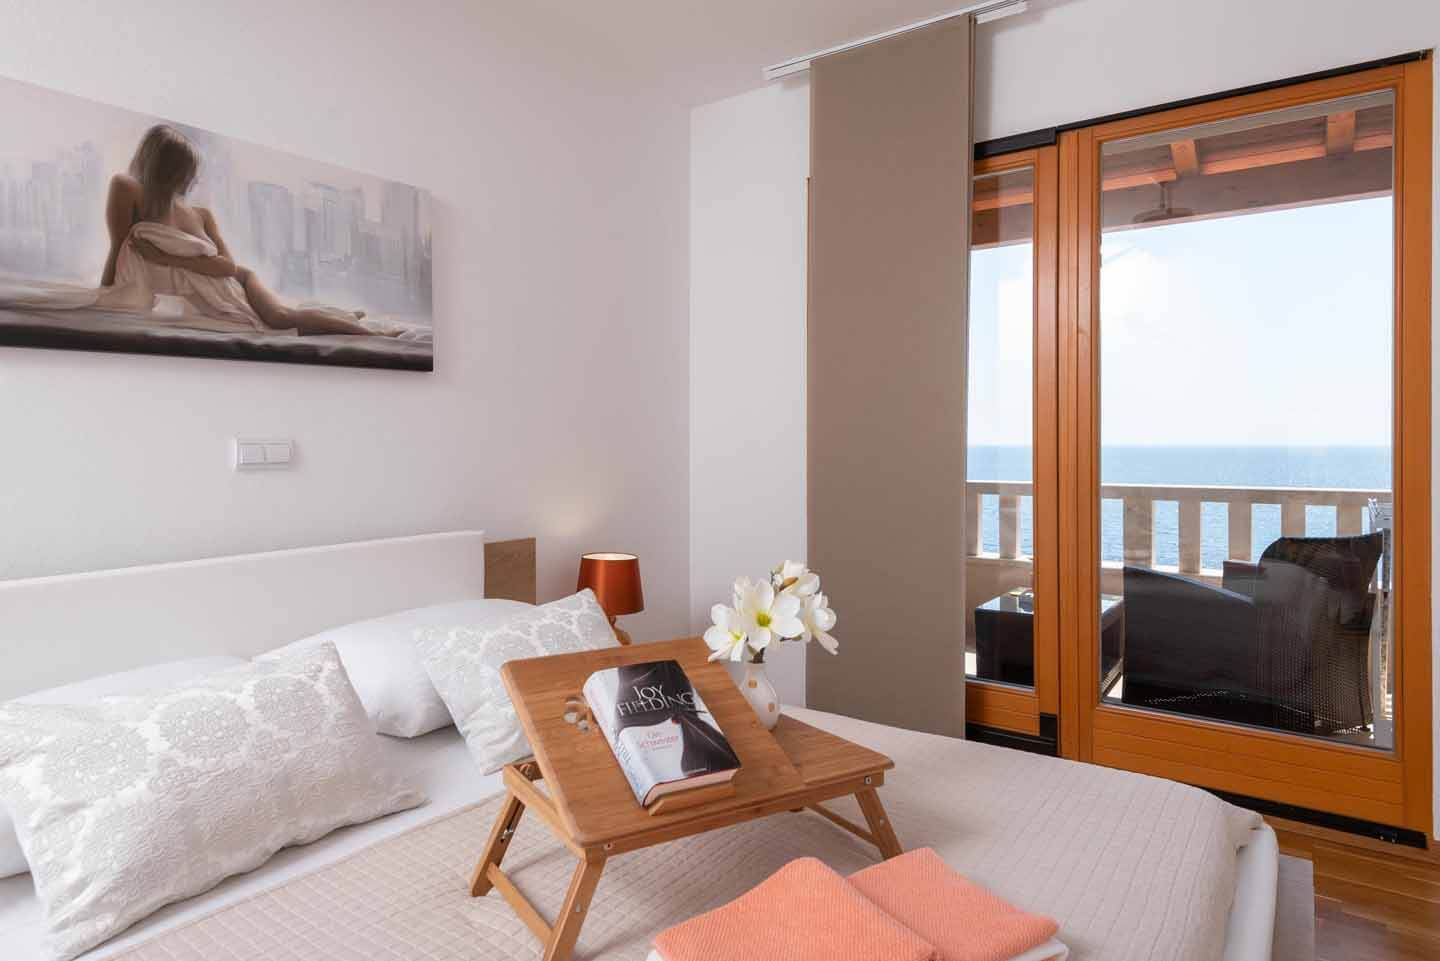 Double bedroom with sea view and direct balcony access two